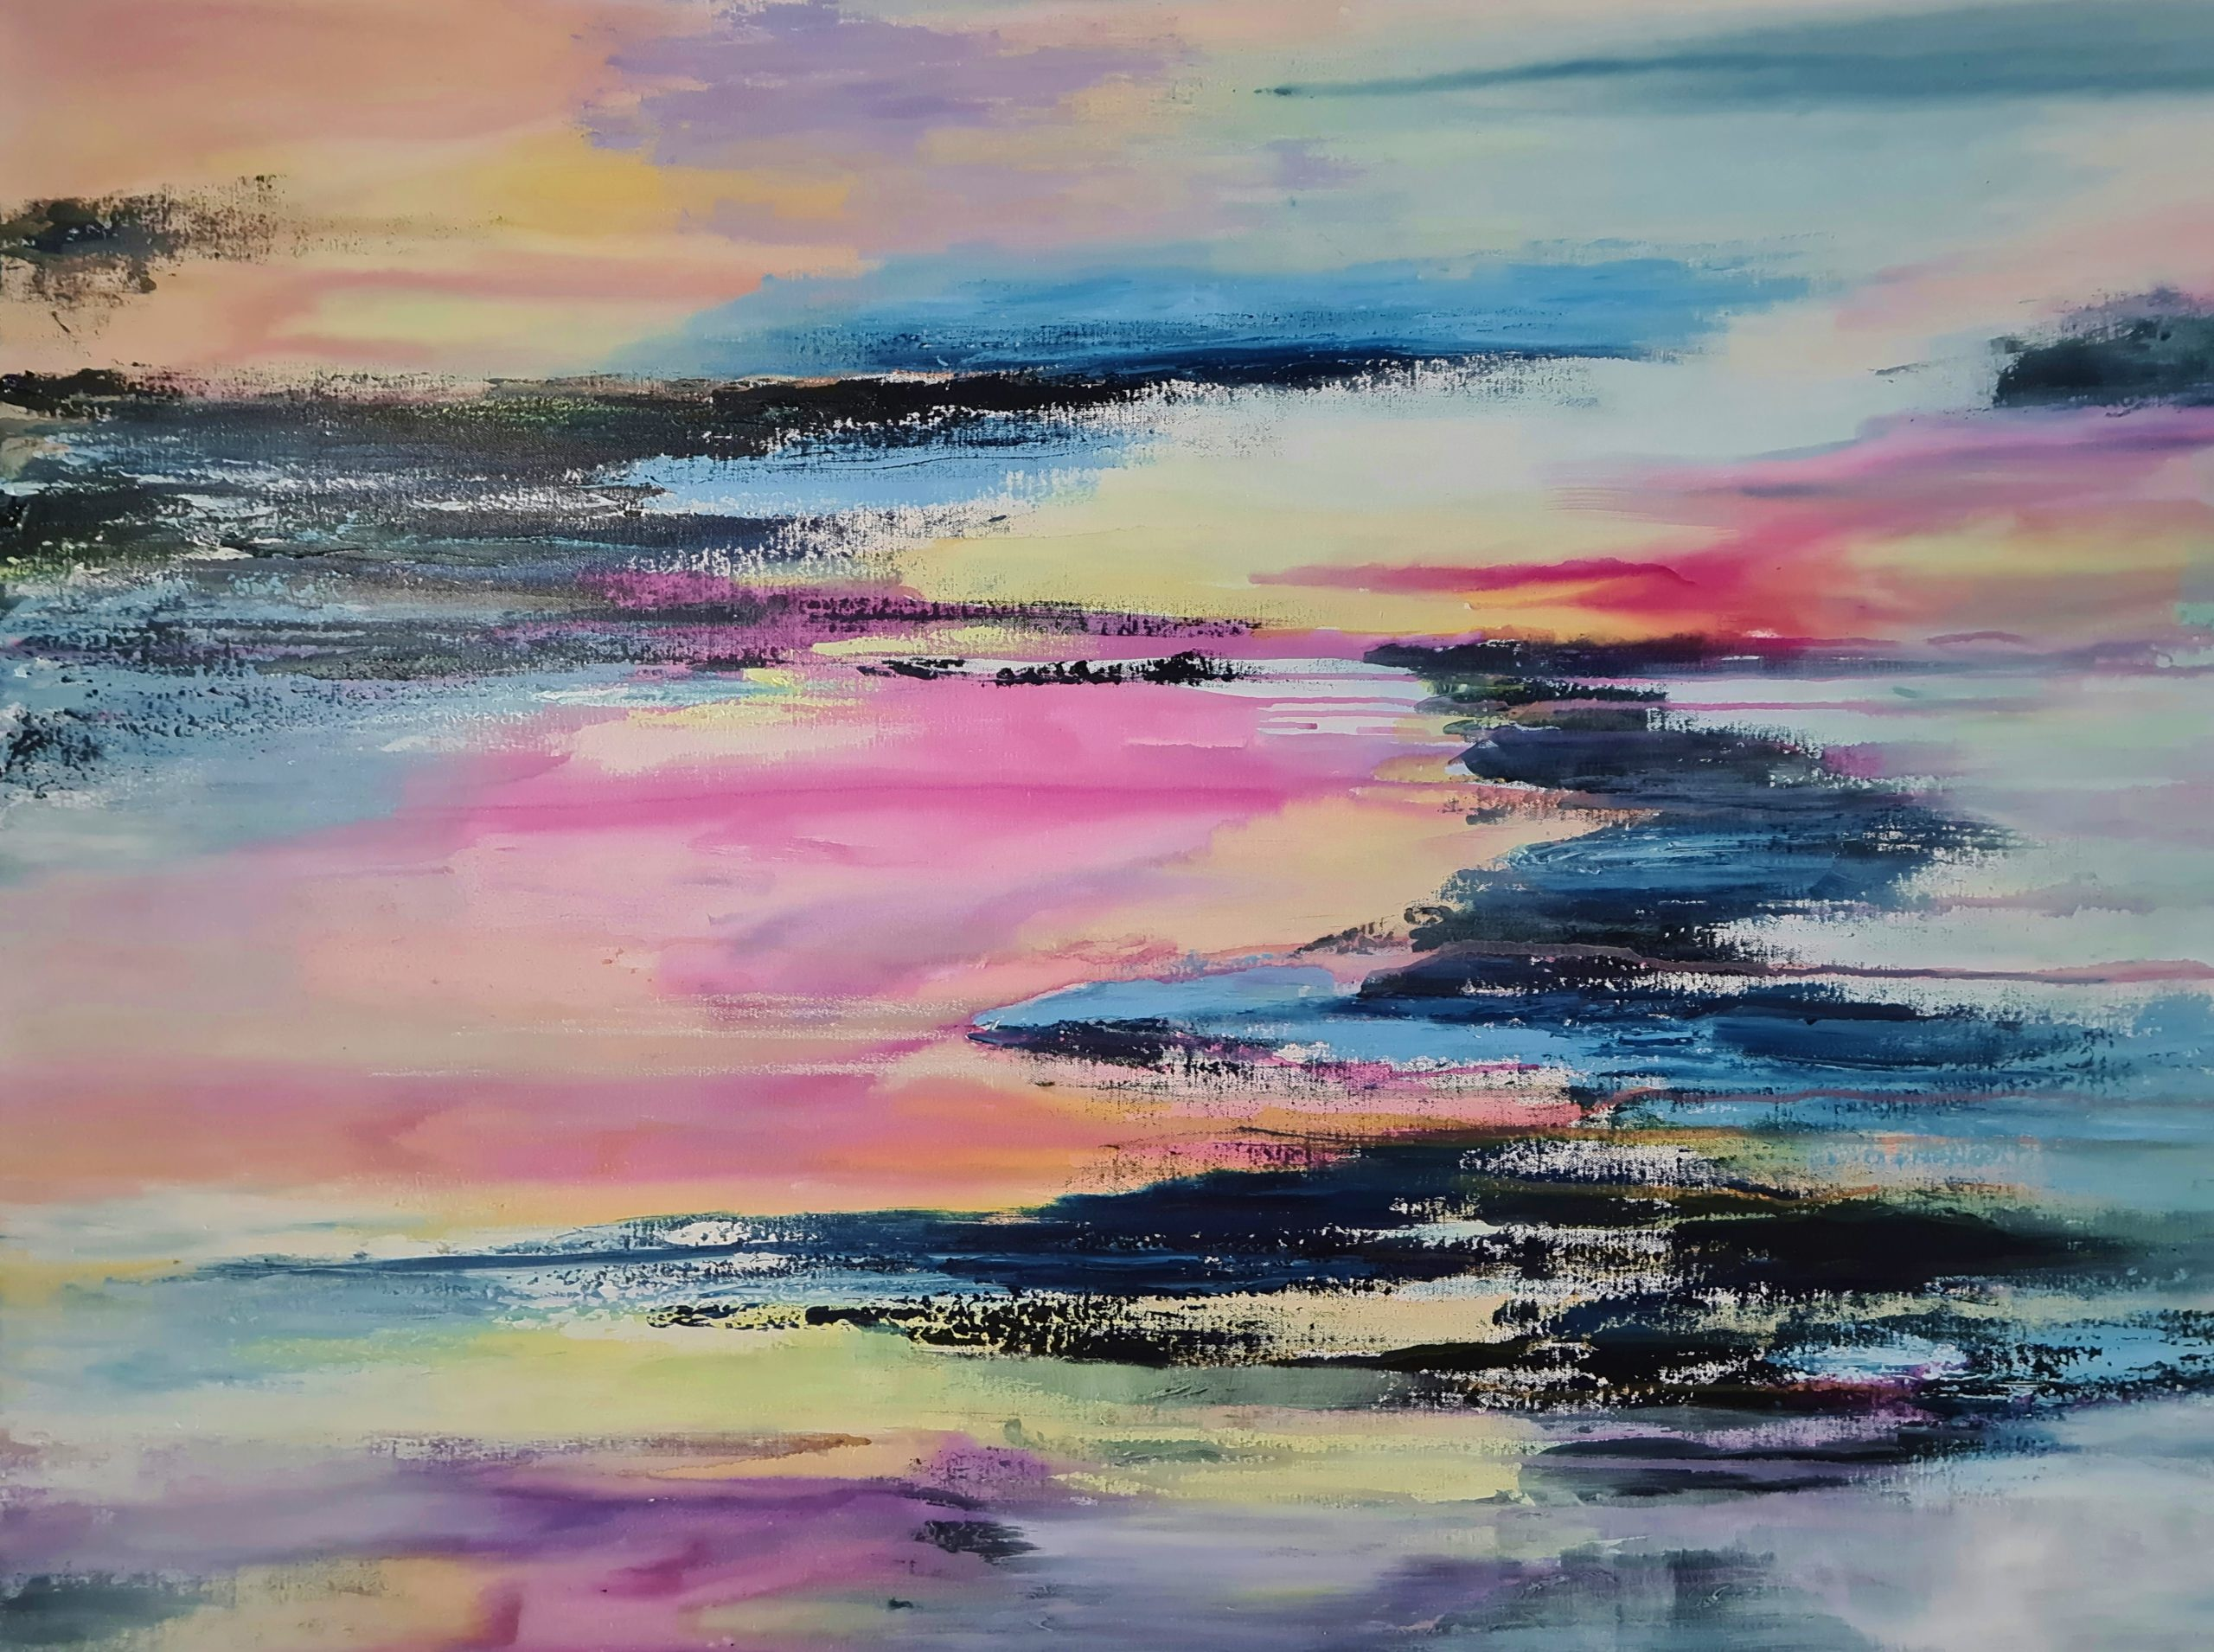 Abstract impression of sunset over the ocean